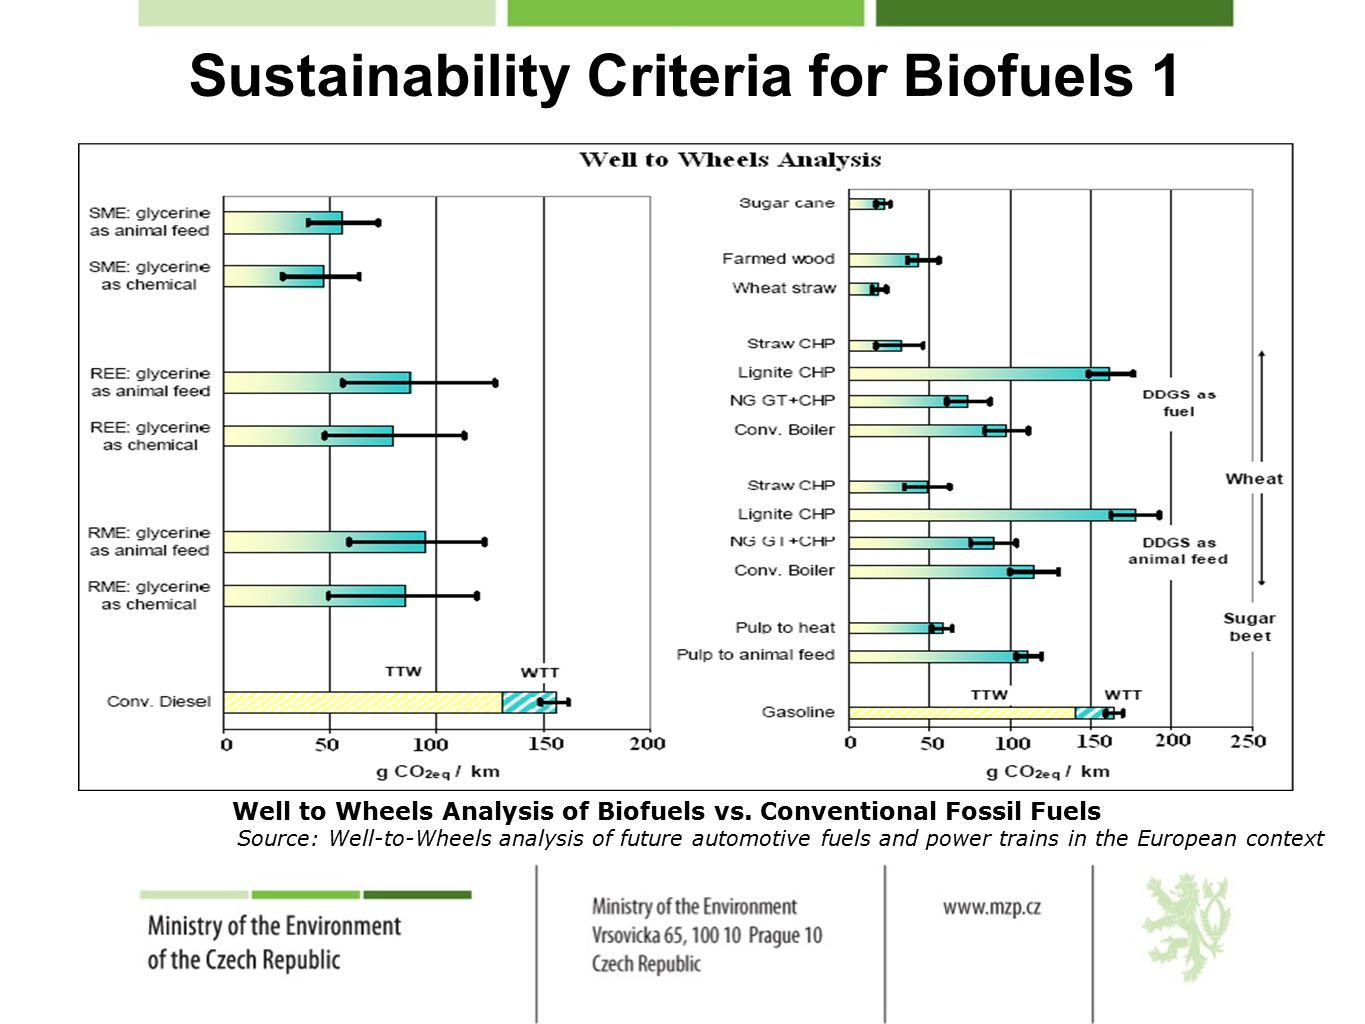 Sustainability Criteria for Biofuels 1 Well to Wheels Analysis of Biofuels vs.